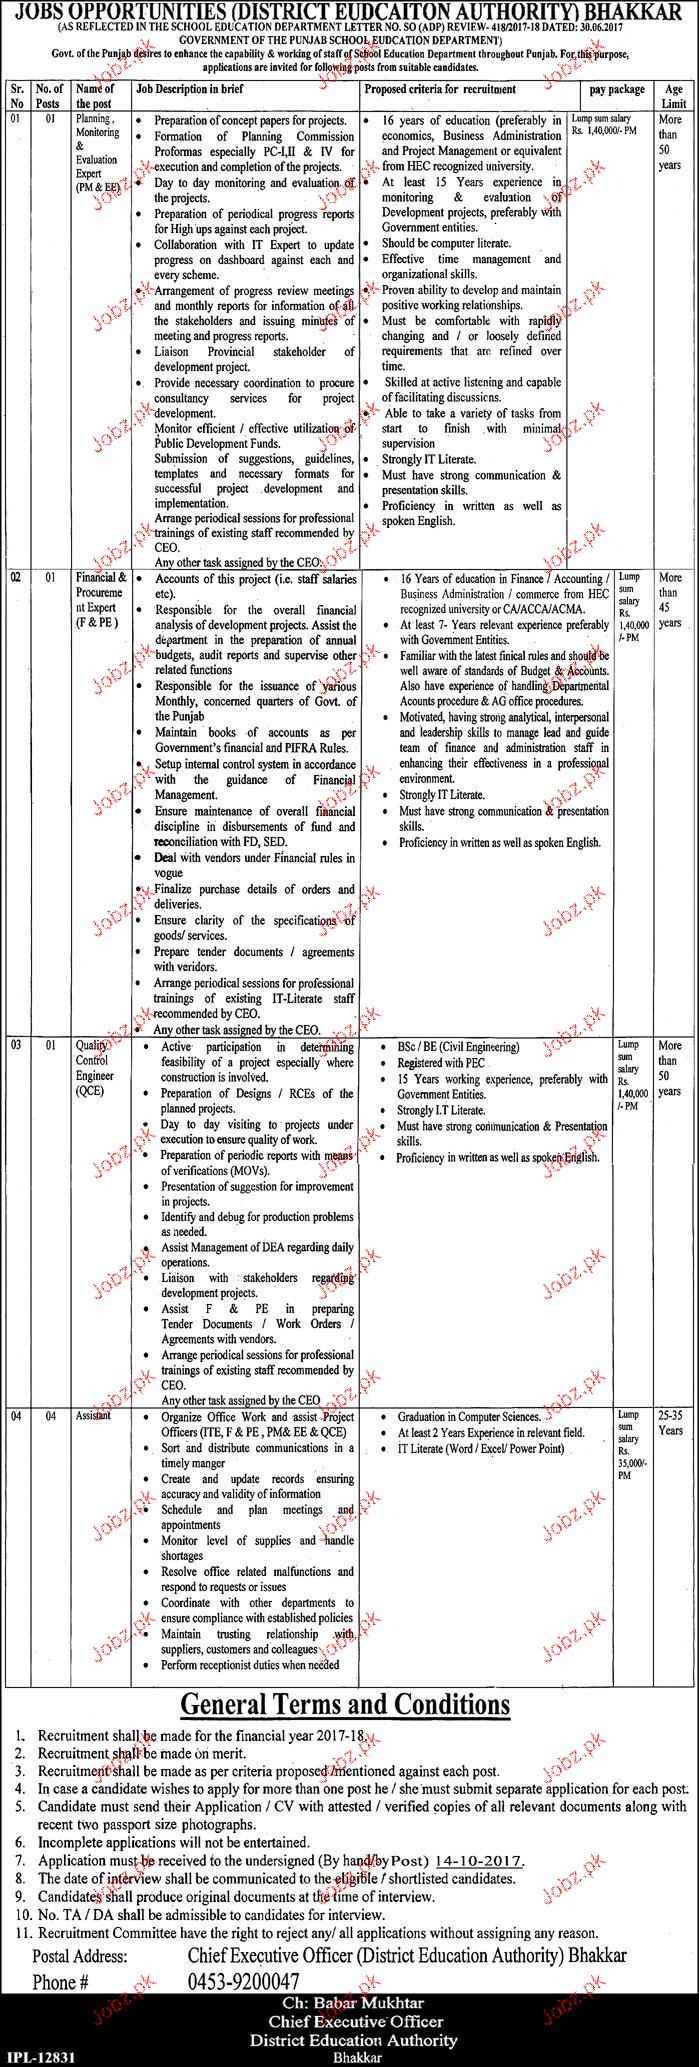 District Education Authority Jobs